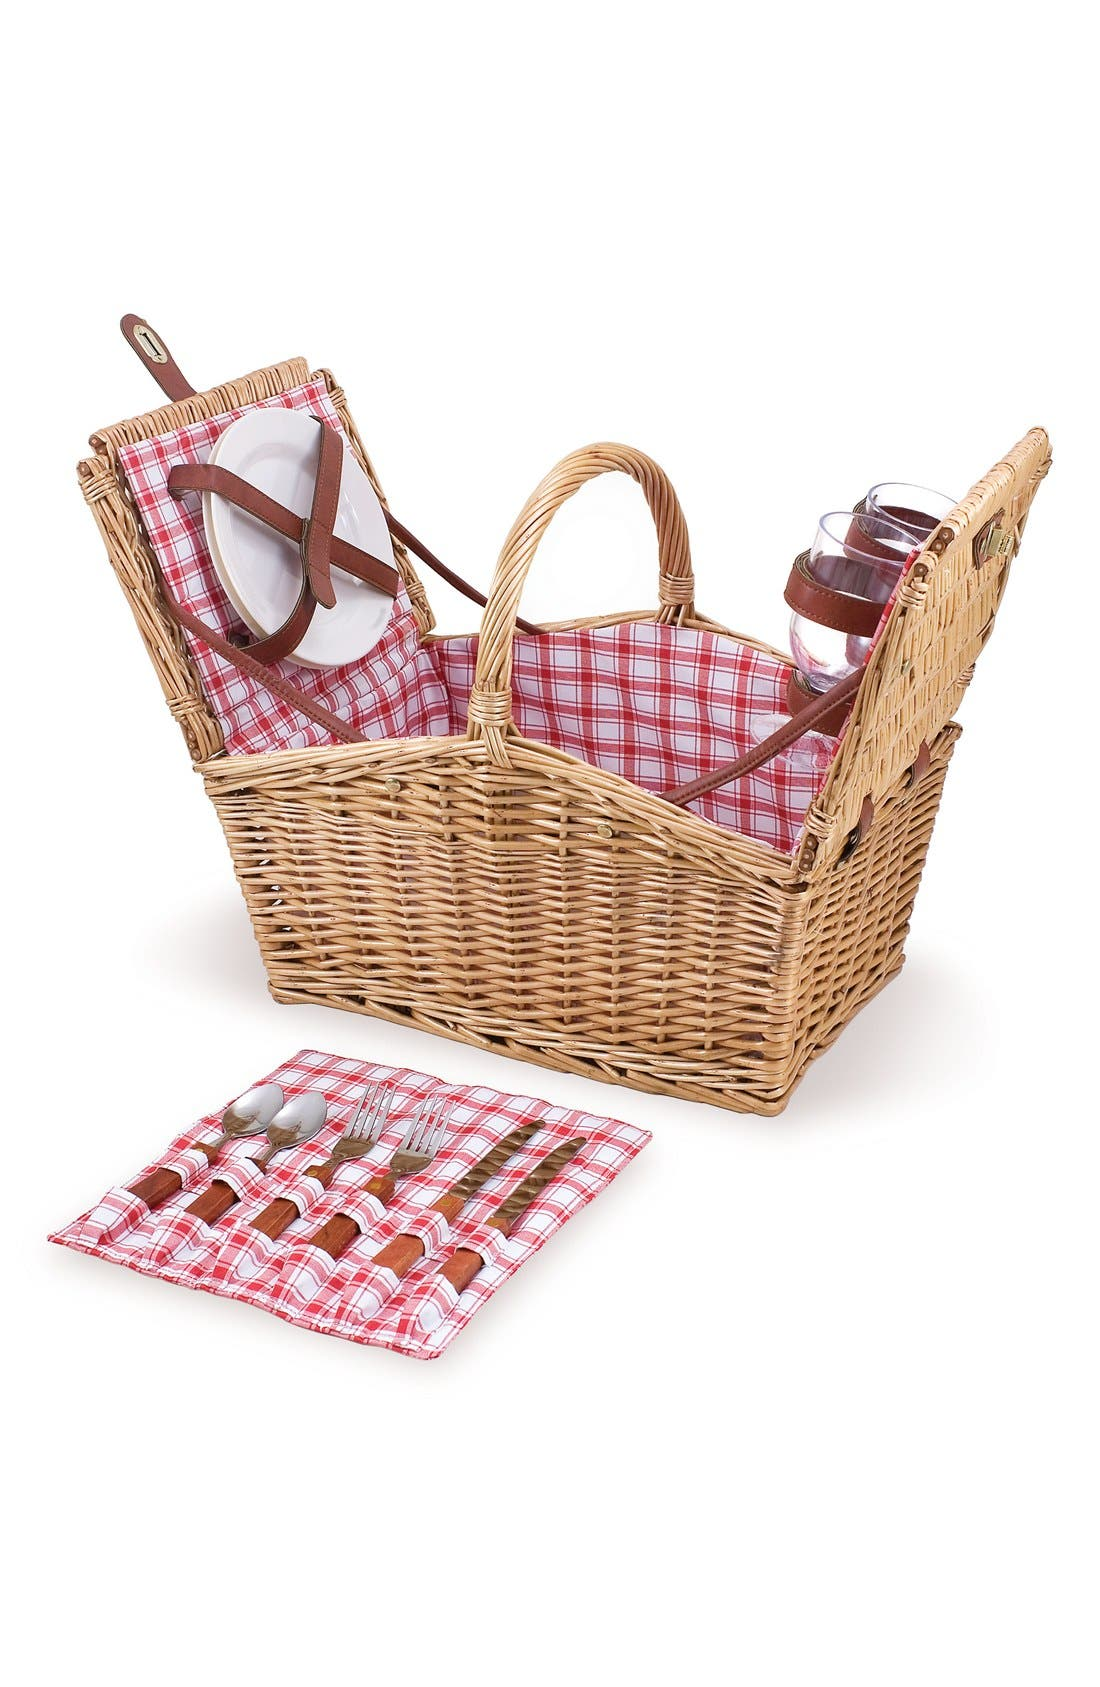 Main Image - Picnic Time 'Piccadilly' Wicker Picnic Basket